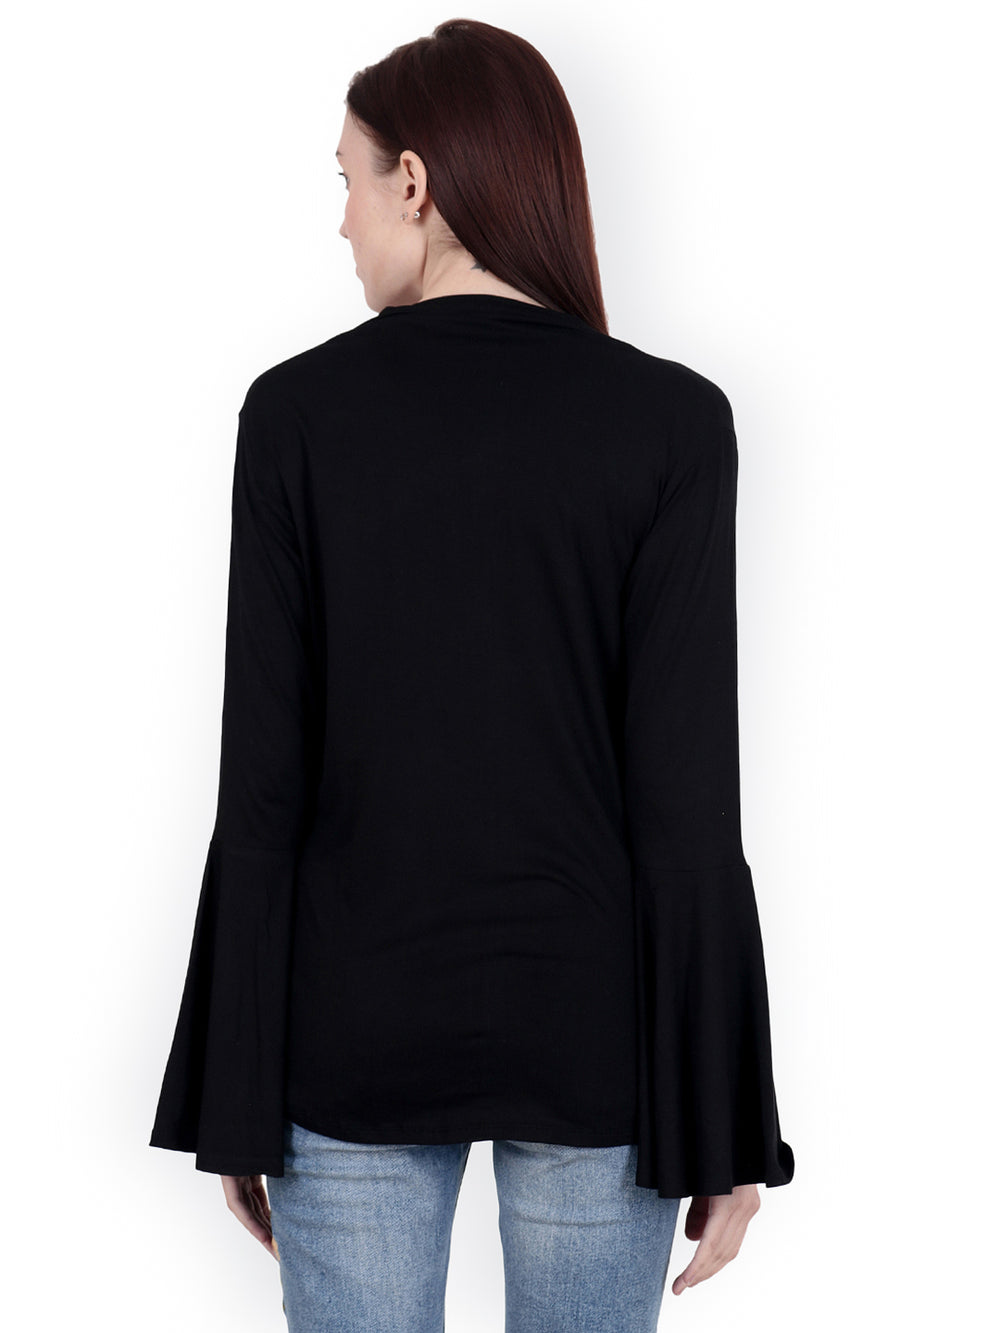 SCORPIUS Black Solid Open Front Shrug